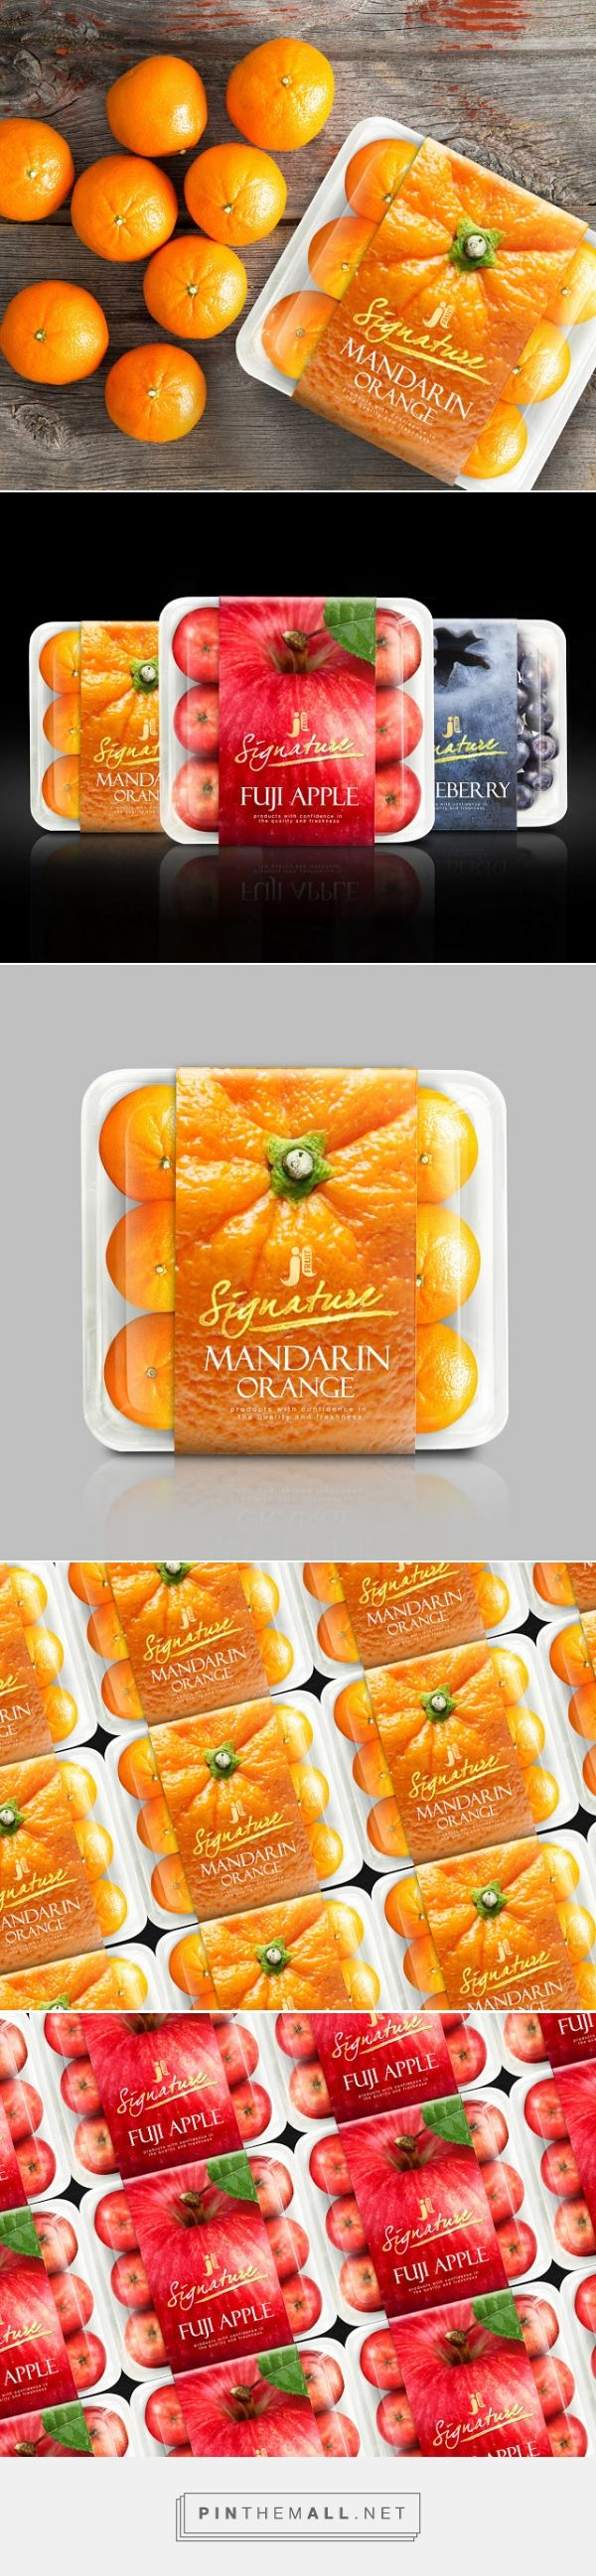 JL #Fruit #Packaging designed by Prompt Design​ - http://www.packagingoftheworld.com/2015/04/jl-fruit-packaging-design.html